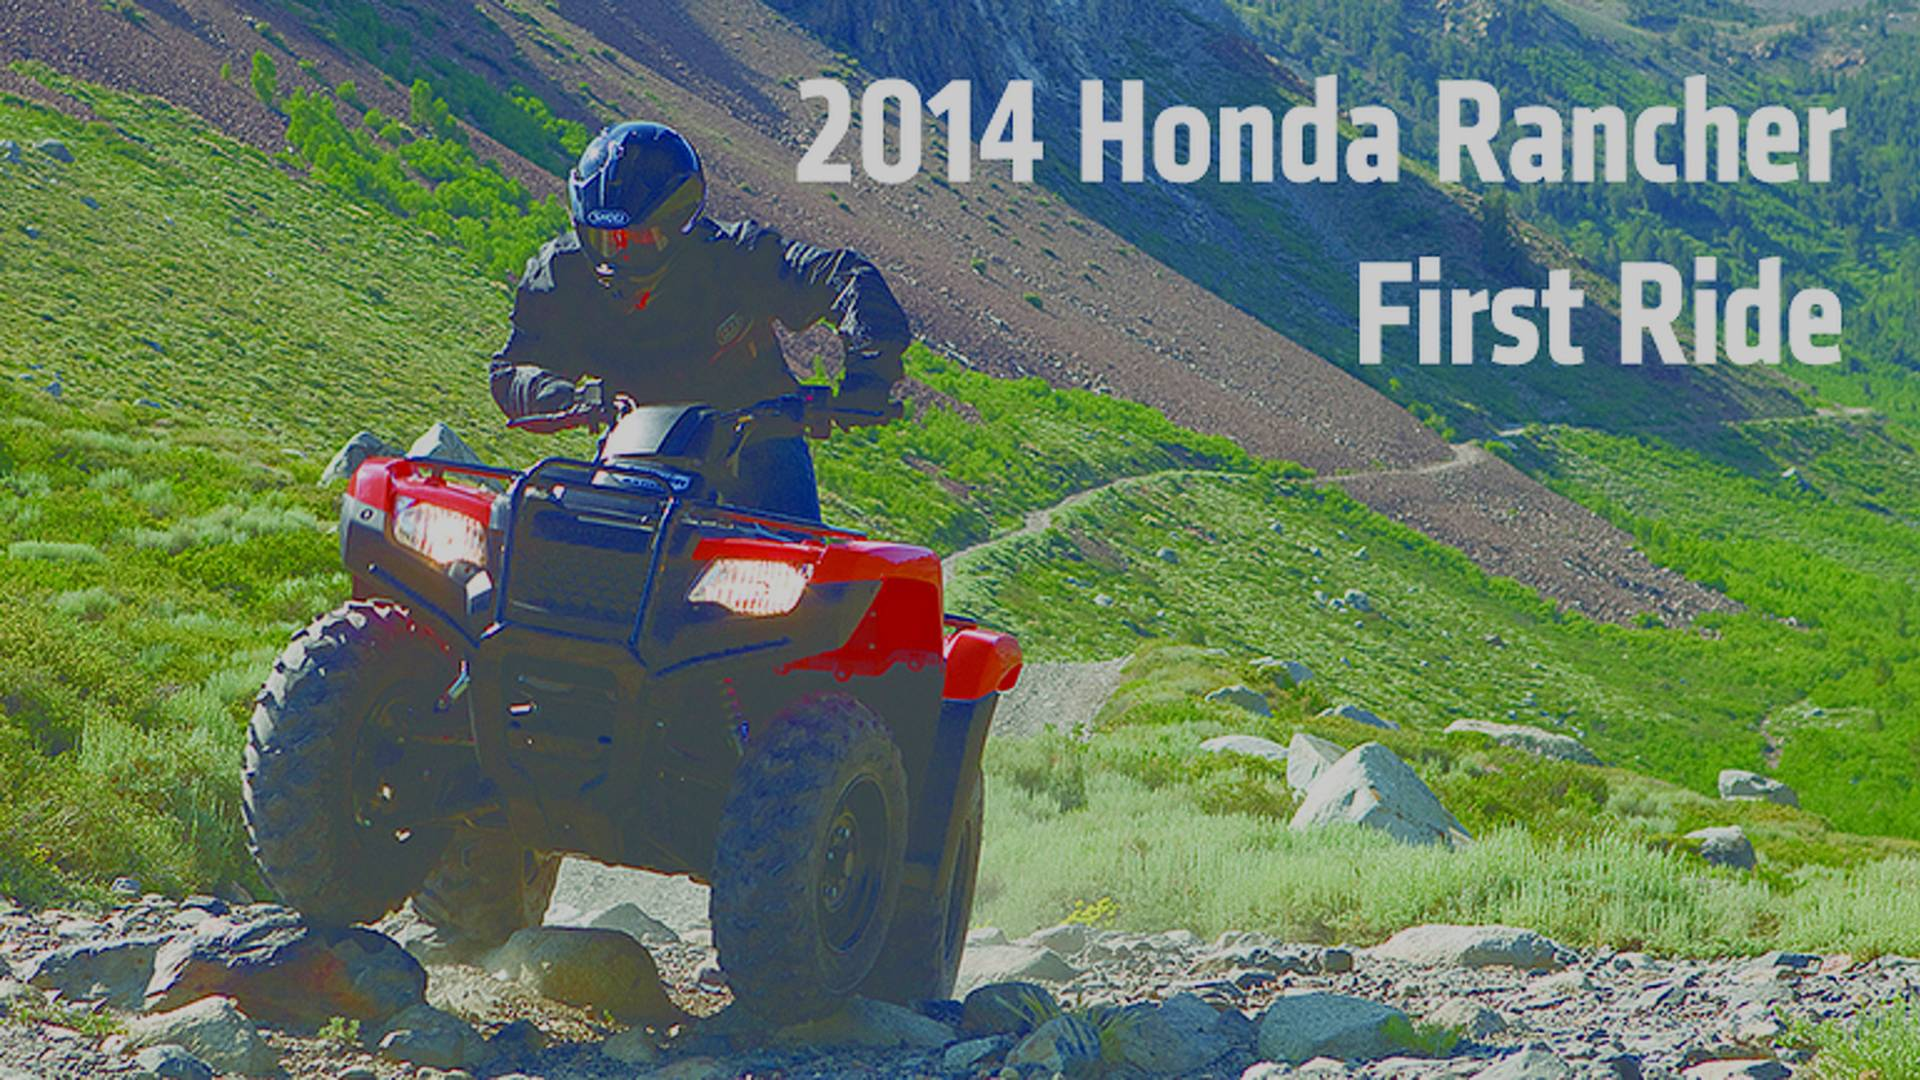 2014 Honda Rancher: First Ride Review